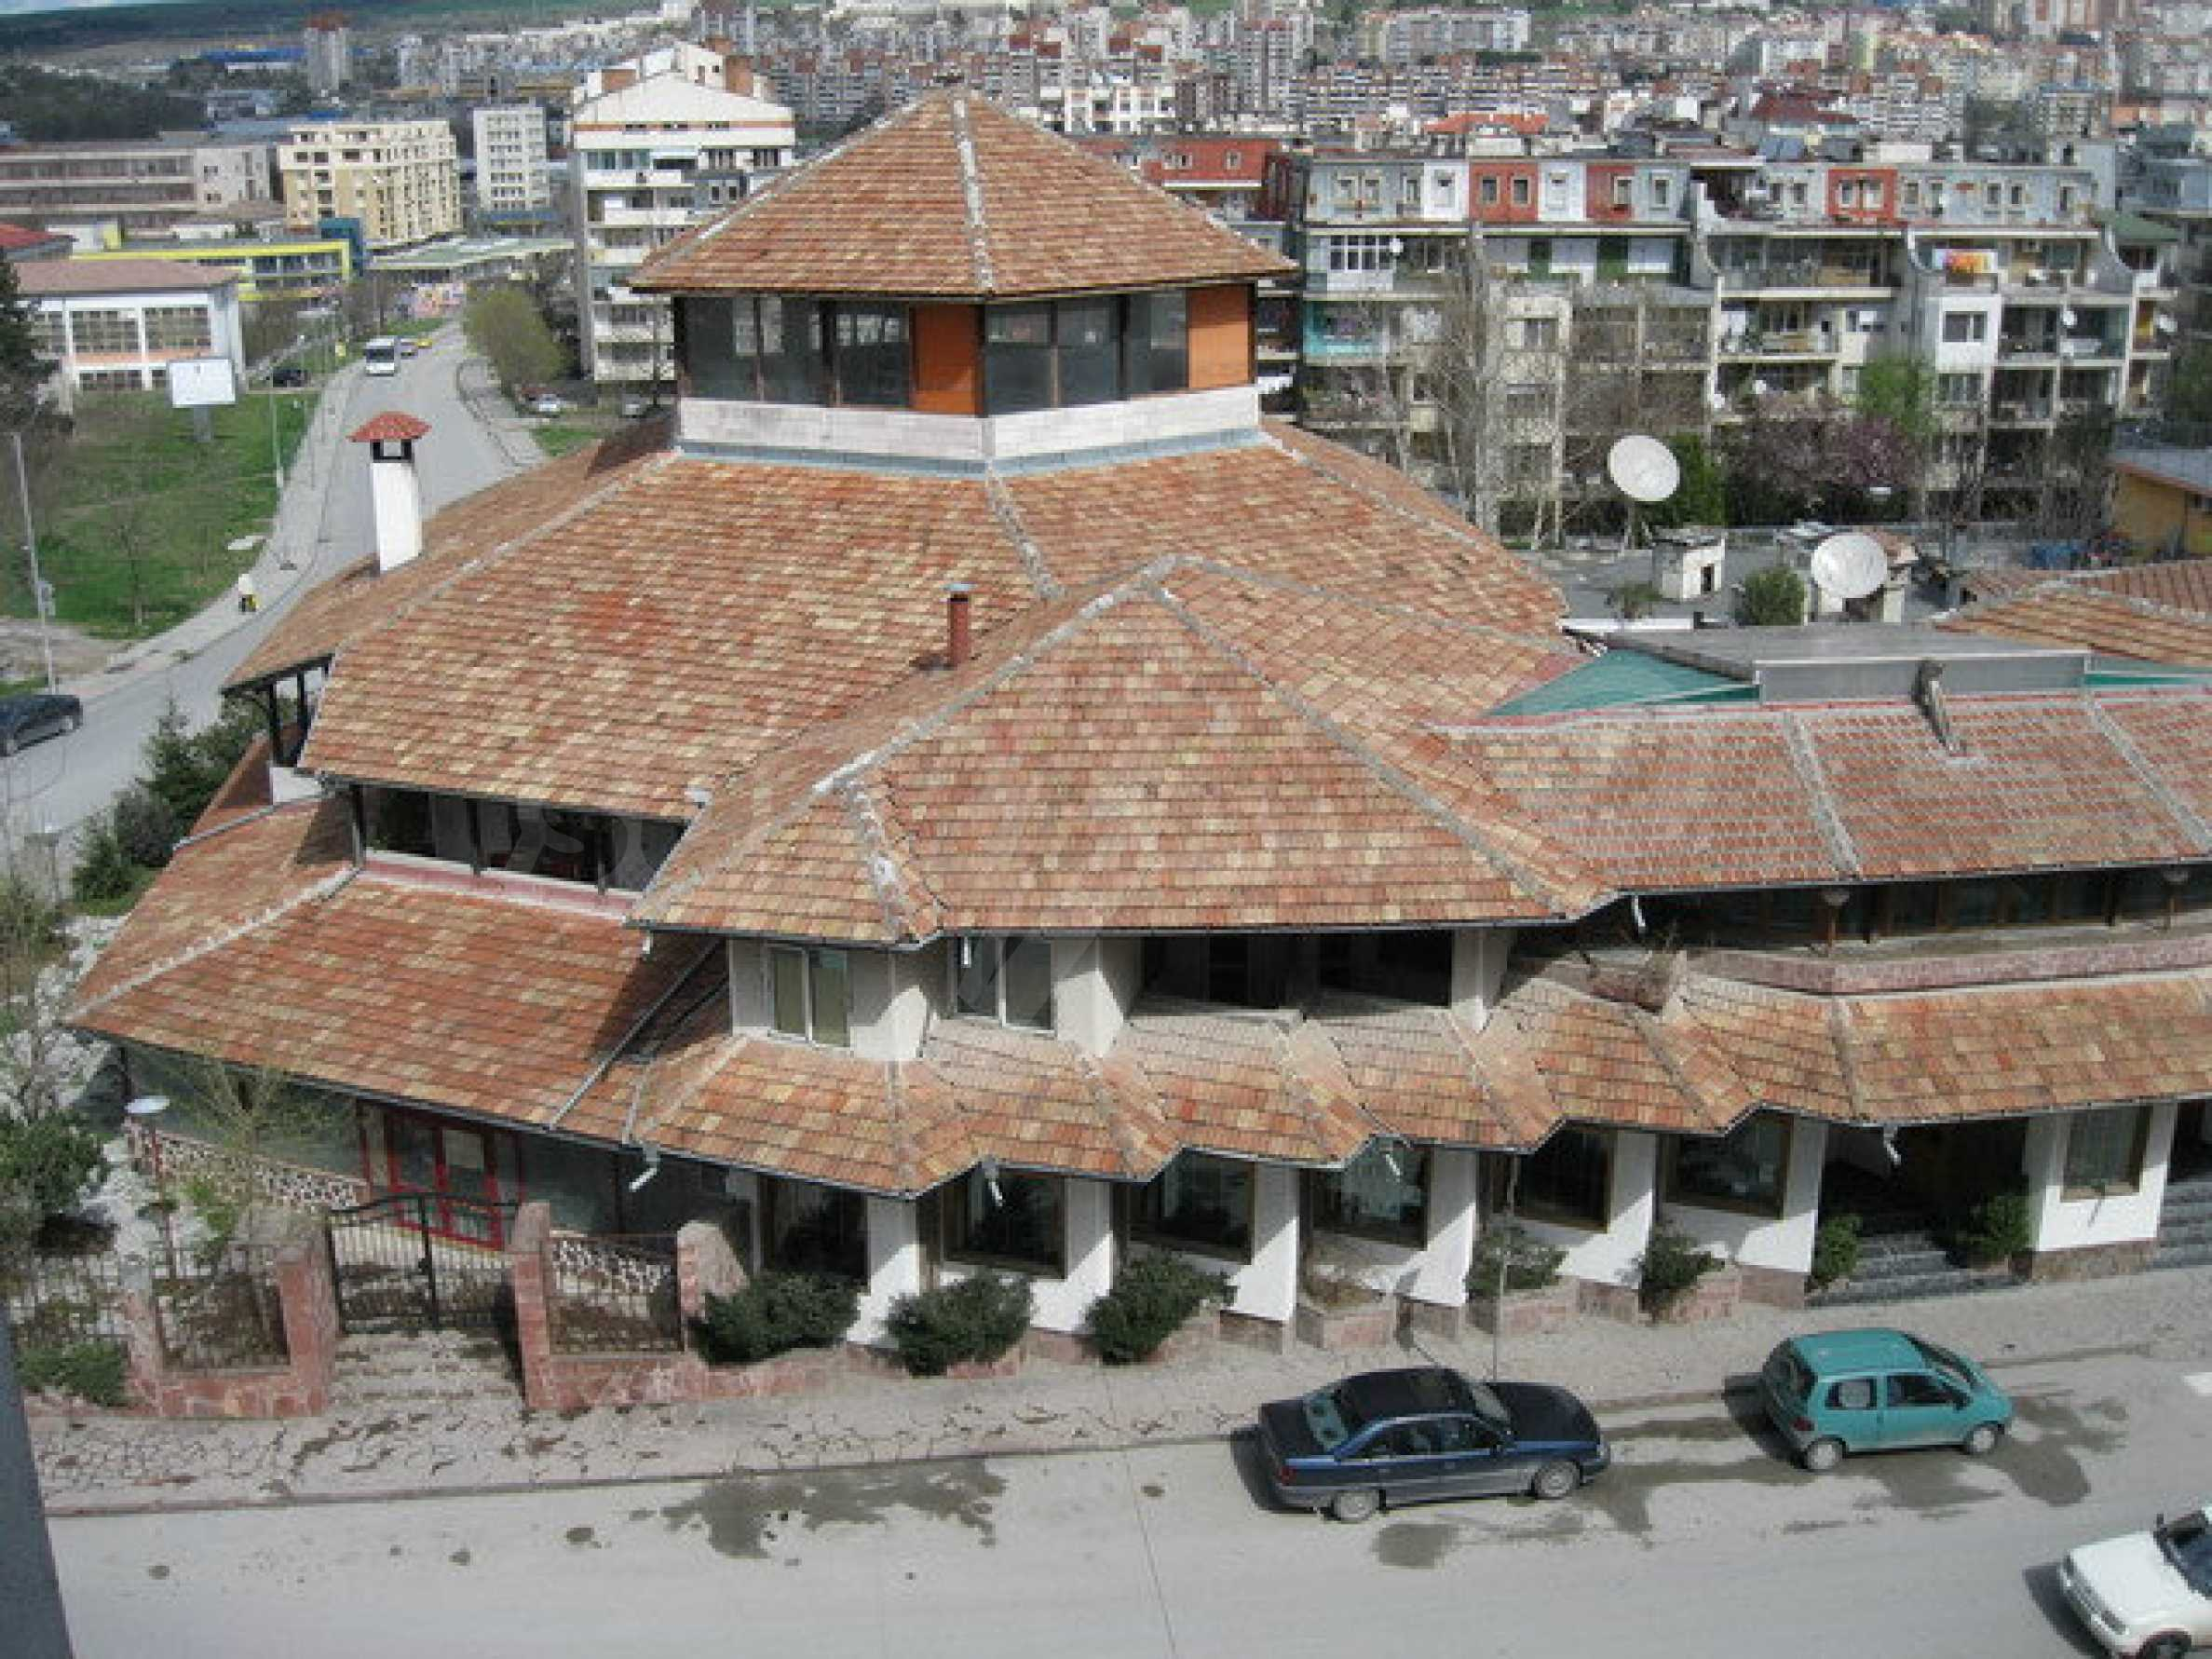 Commercial property on 3 levels for sale in Veliko Tarnovo